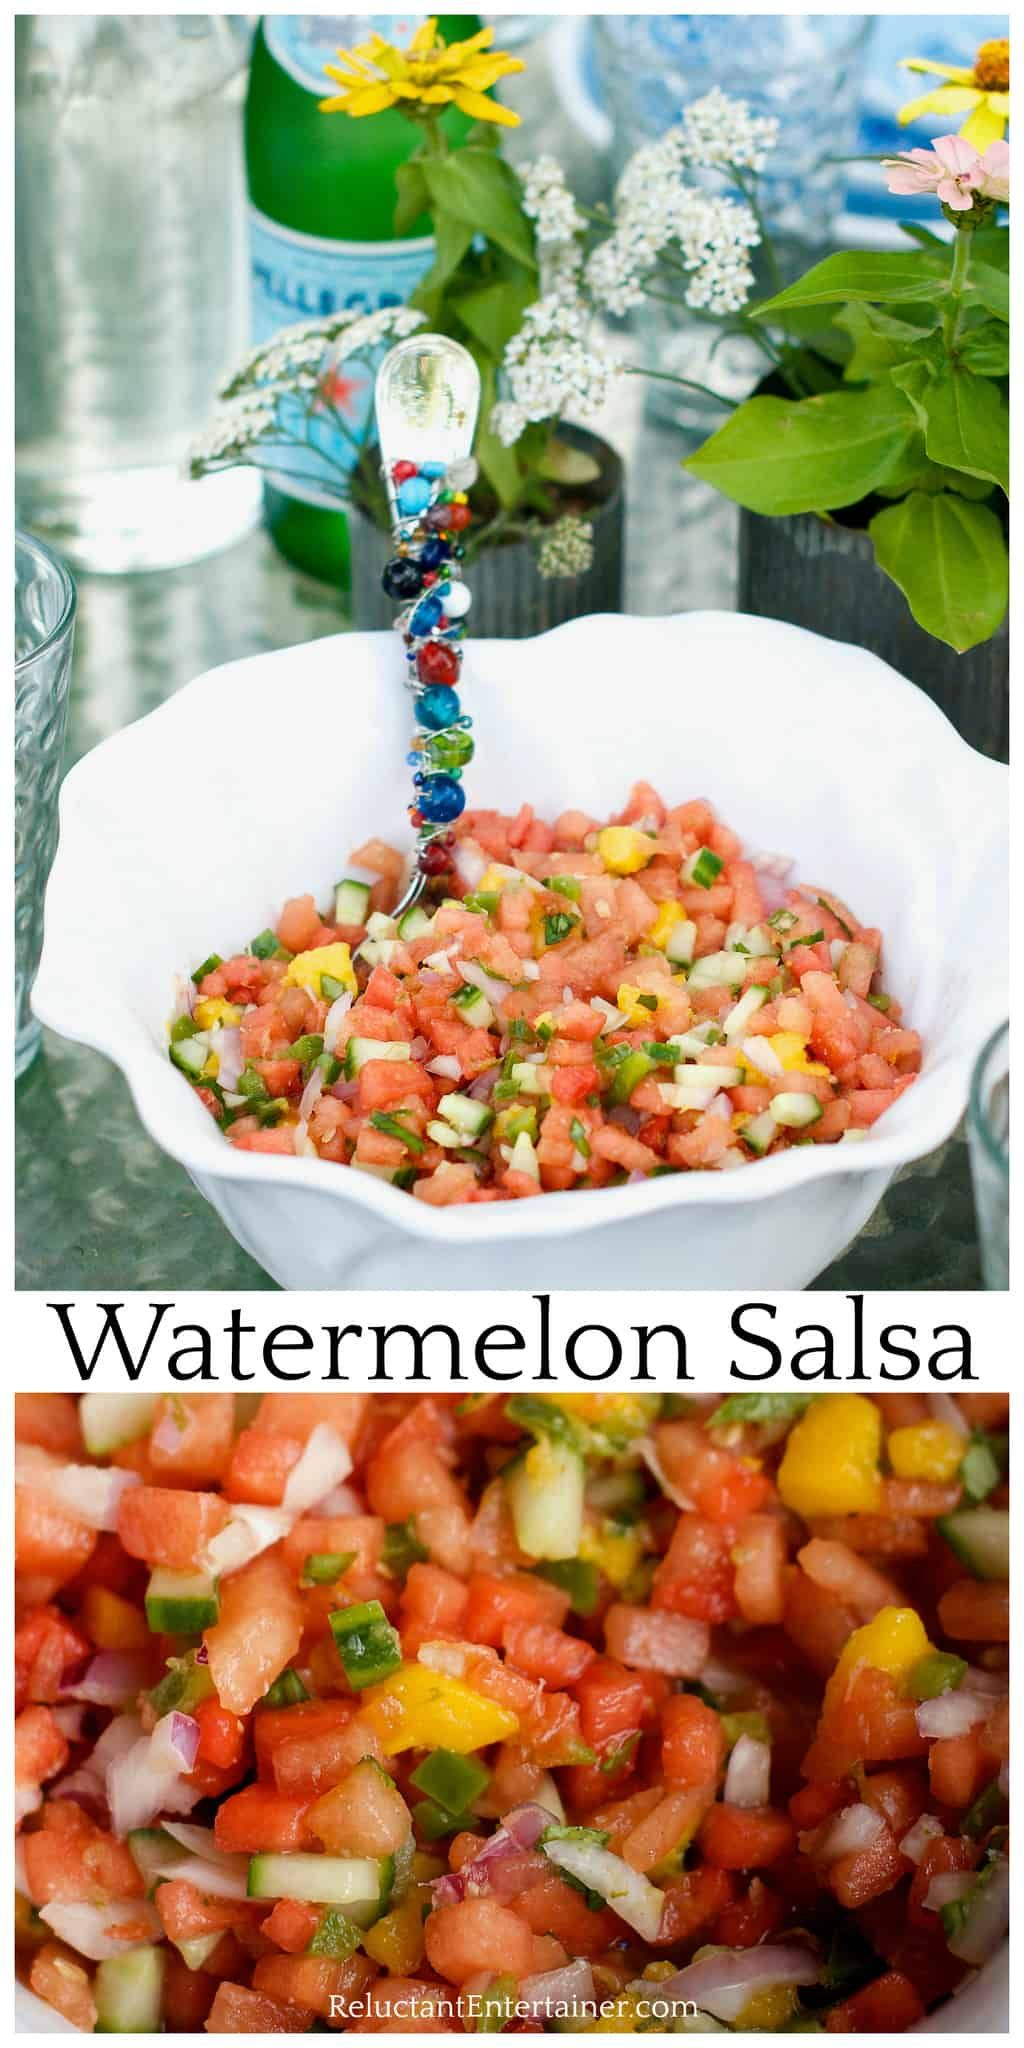 Mix your favorite salsa ingredients together with diced watermelon and mango, and you will have the Best Watermelon Salsa recipe.